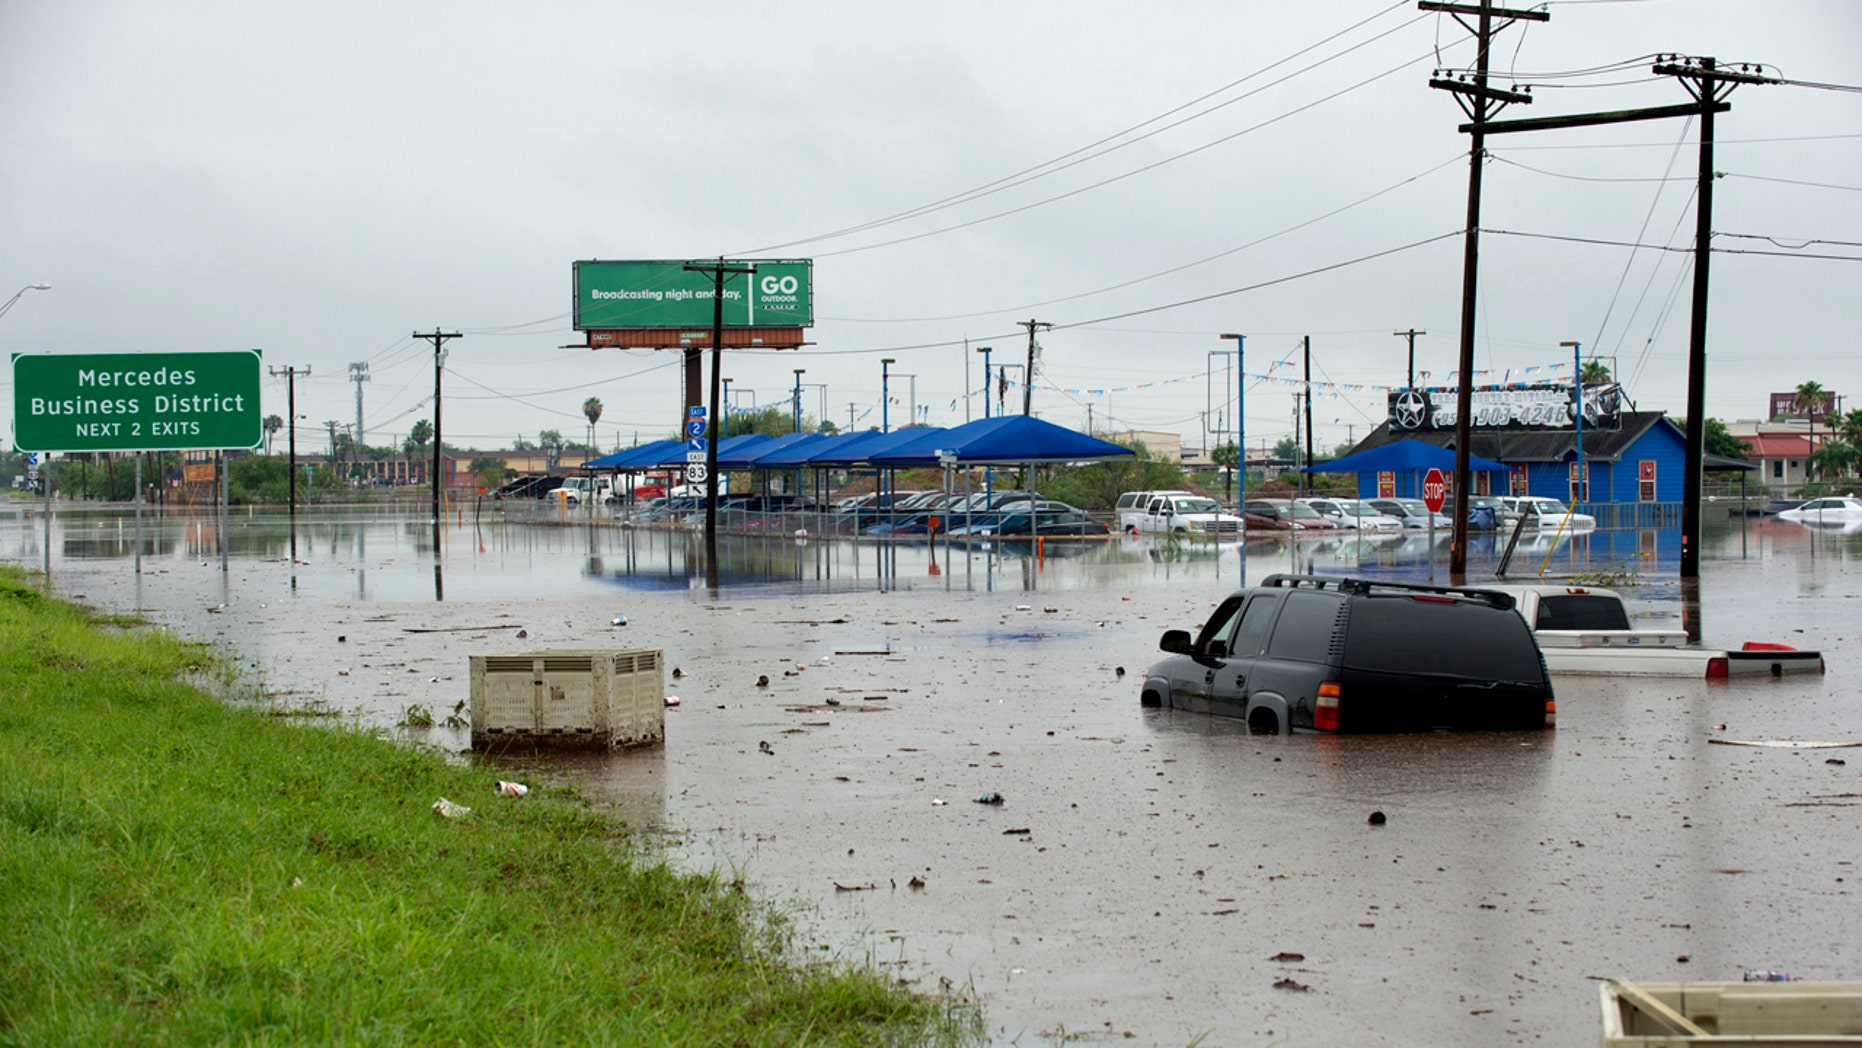 Abandoned vehicles sit in sewage-tainted floodwater Wednesday, June 20, 2018, near Mercedes, Texas.